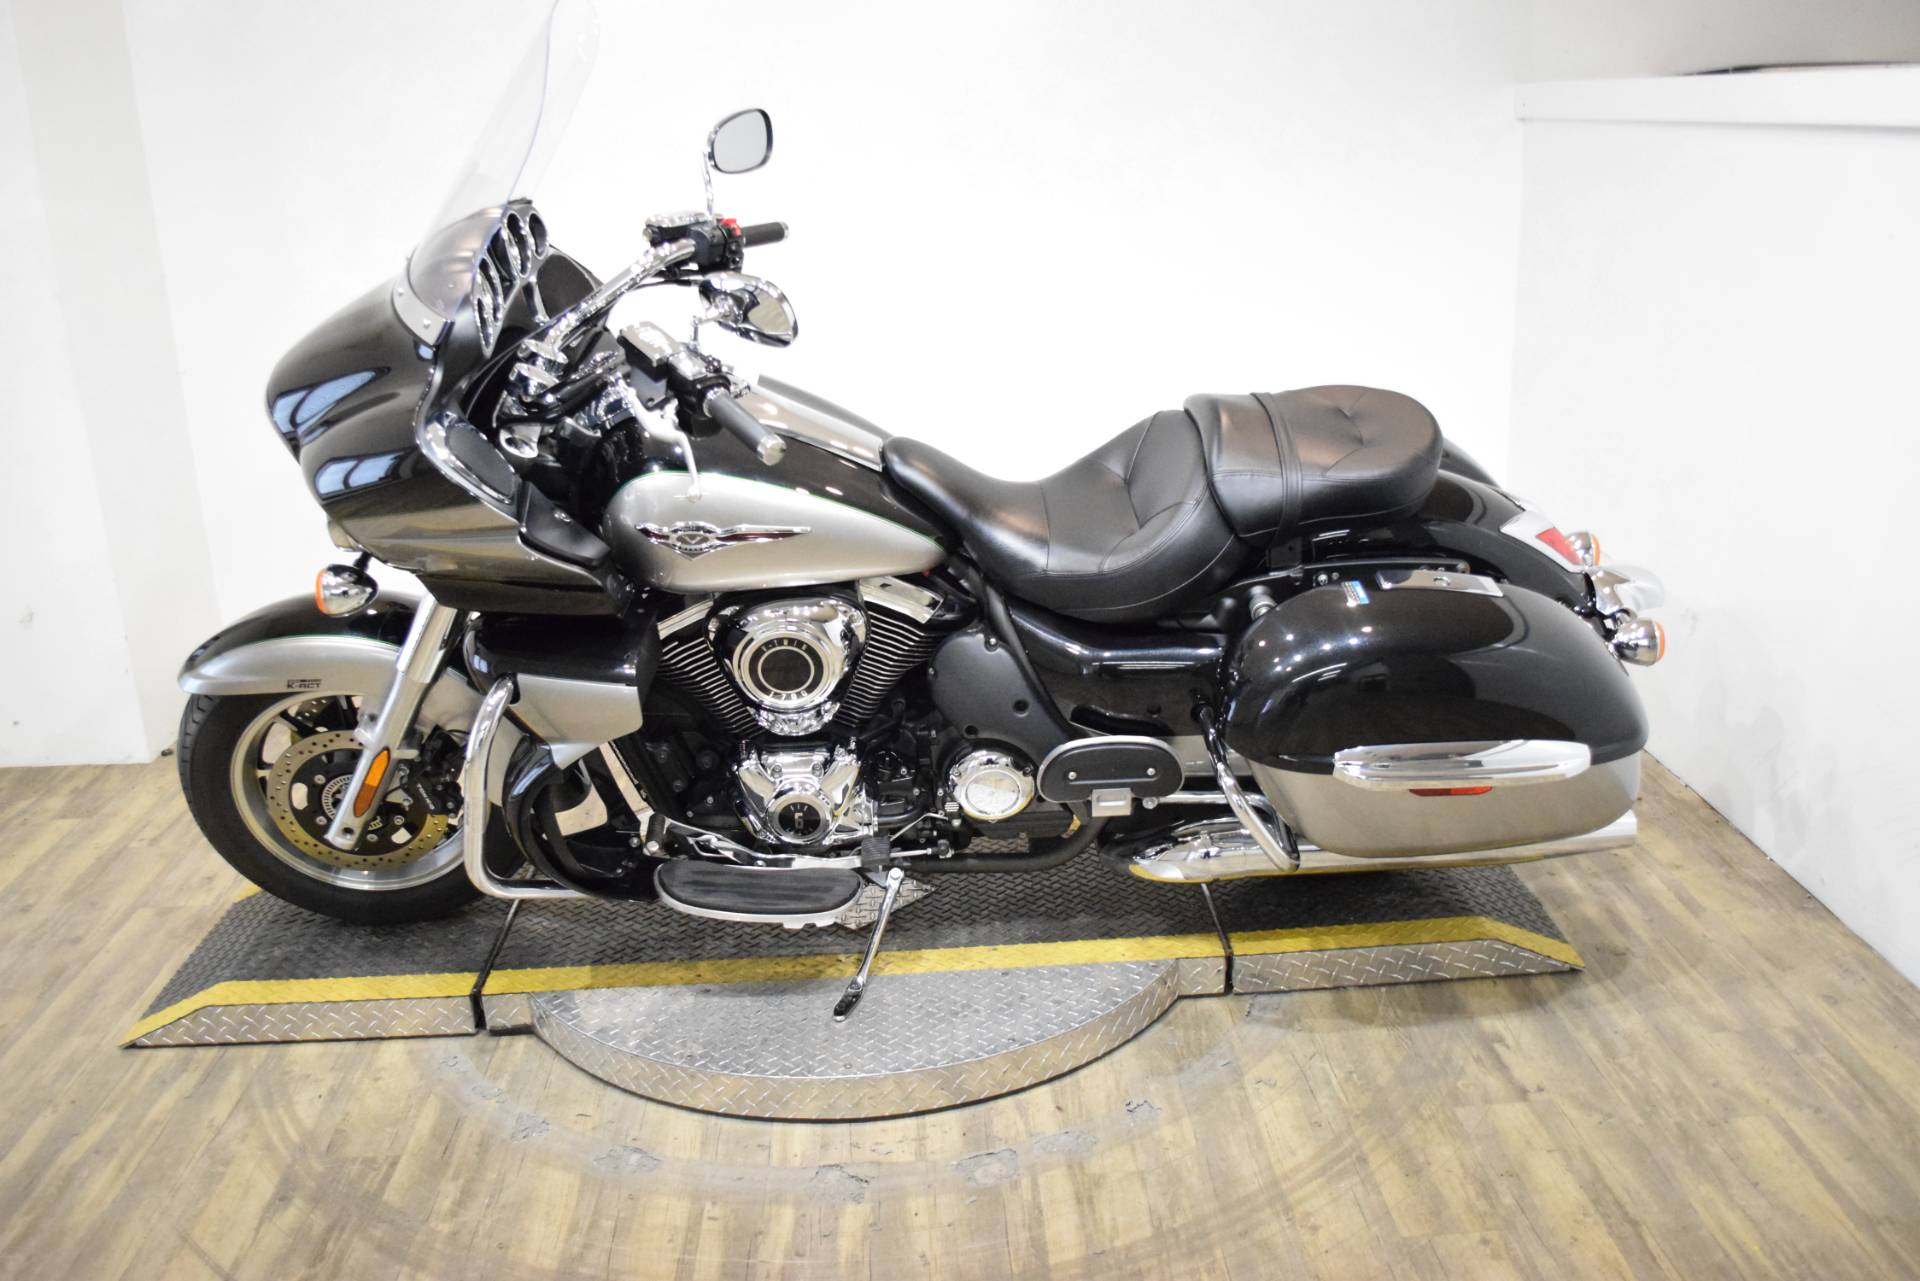 2016 Kawasaki Vulcan 1700 Voyager ABS in Wauconda, Illinois - Photo 15